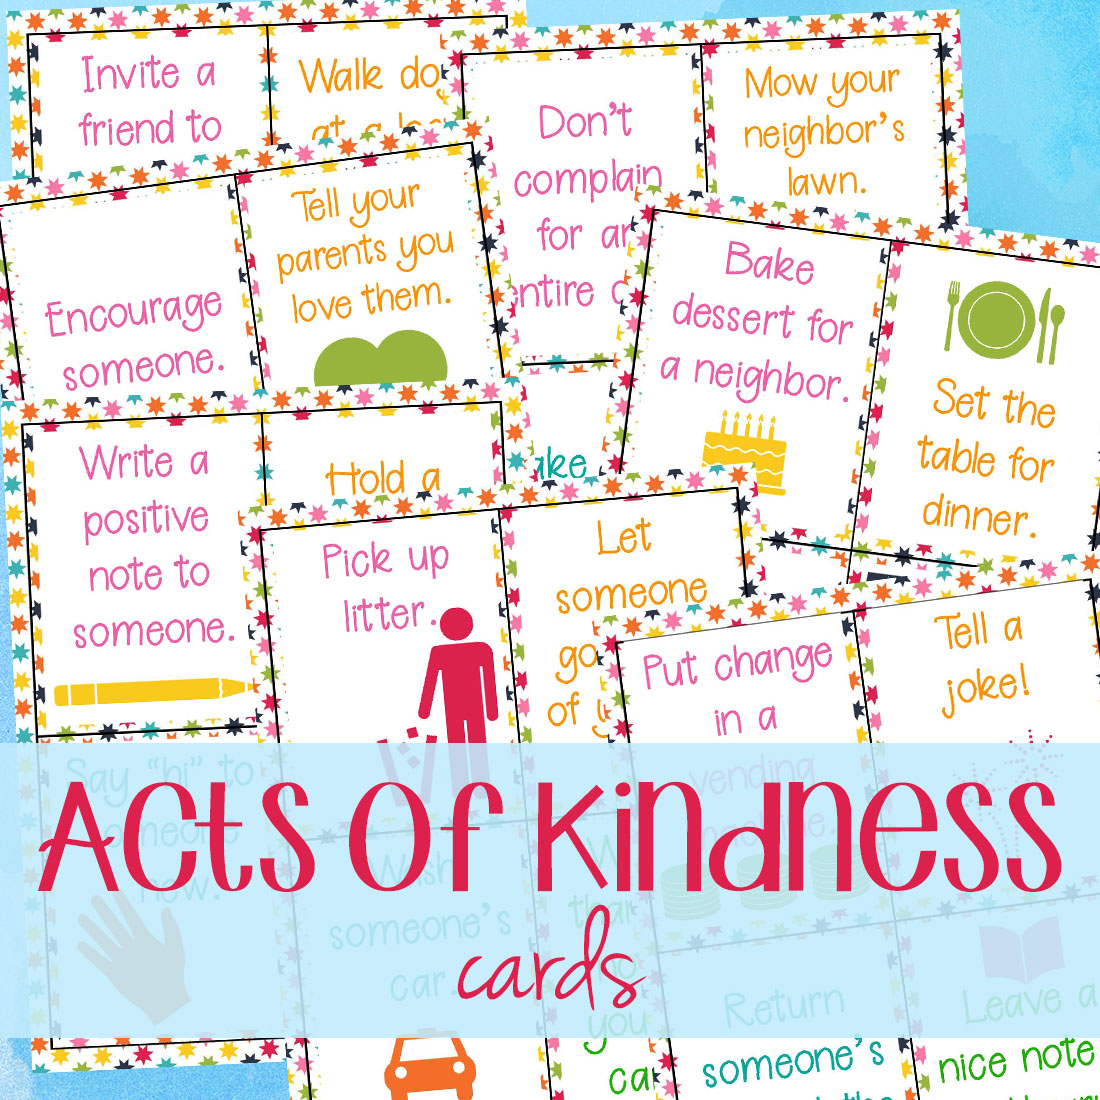 This Random Acts of Kindness Calendar for December is a perfect way to spread holiday cheer throughout the month. These Random acts of kindness ideas and acts of kindness calendar is full of fun ideas. Find the best ways to spread kindness with acts of Kindness for kids and adults